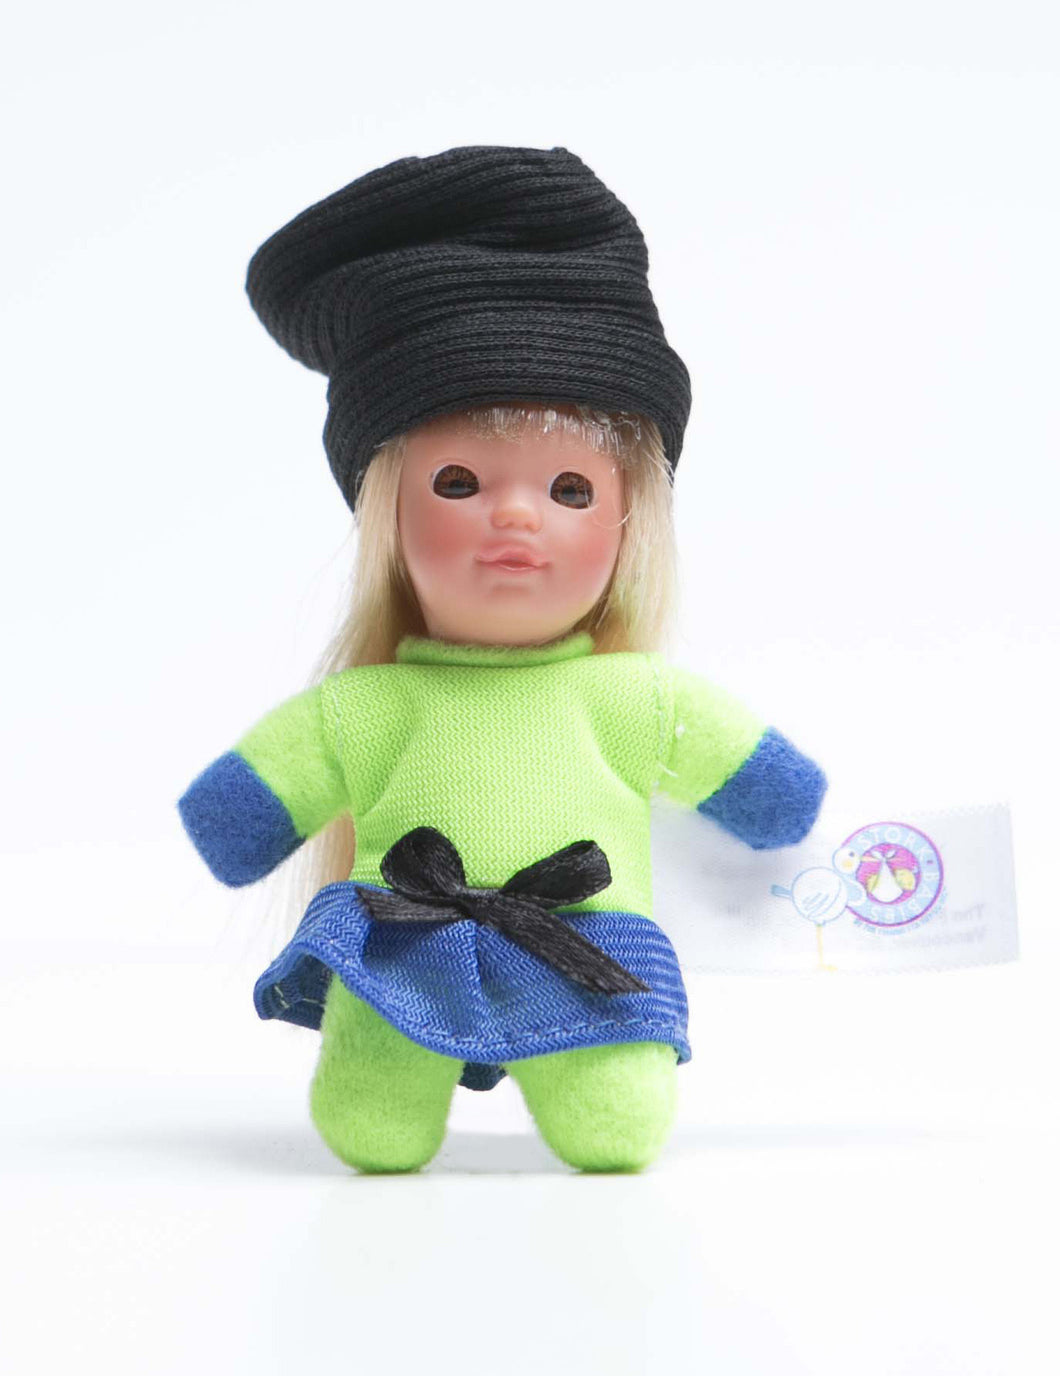 # 5 - Genevieve - The French Collection - Cute small baby doll - Stork Babies - beautiful handcrafted dolls